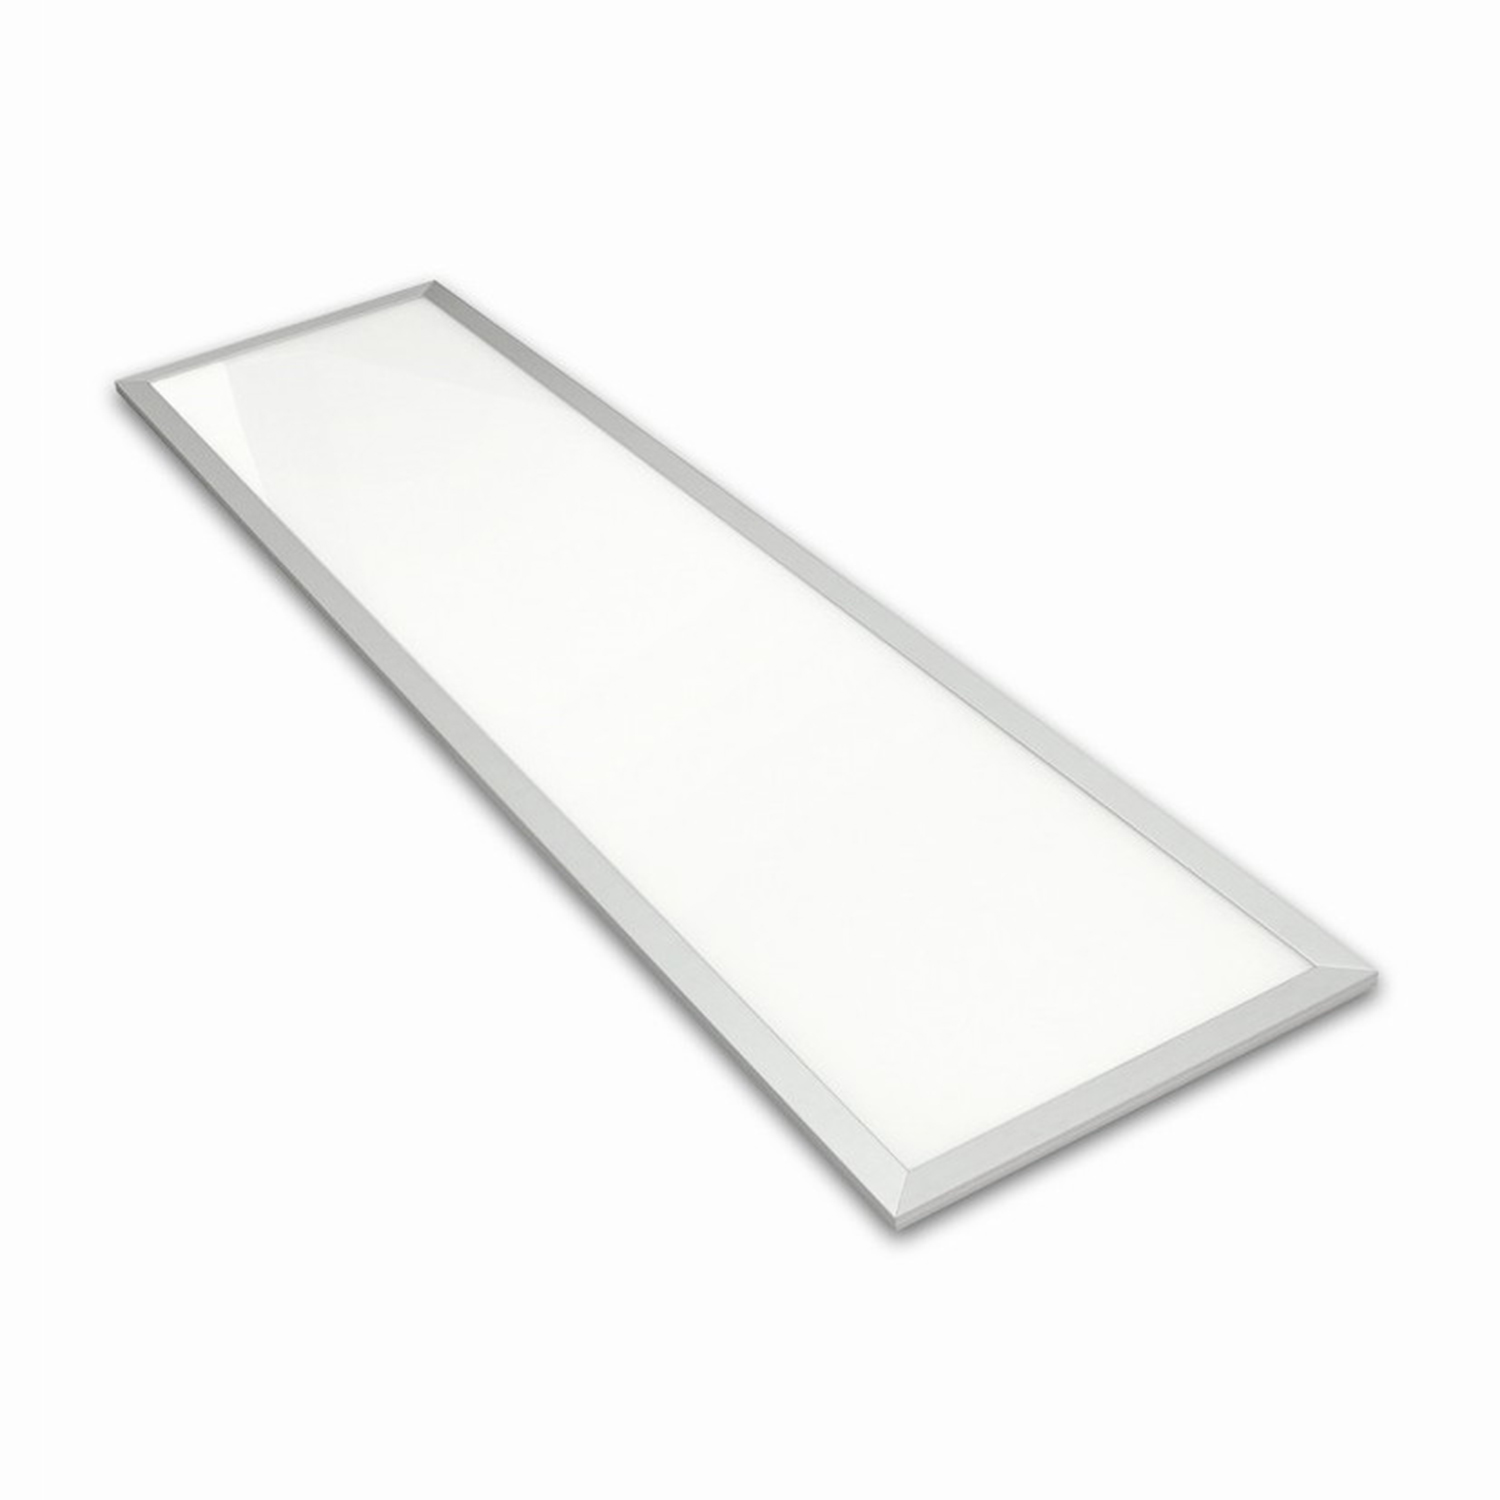 Led panel light 1x4ft fixture 36w 40w 0 10v dimmable pack of 2